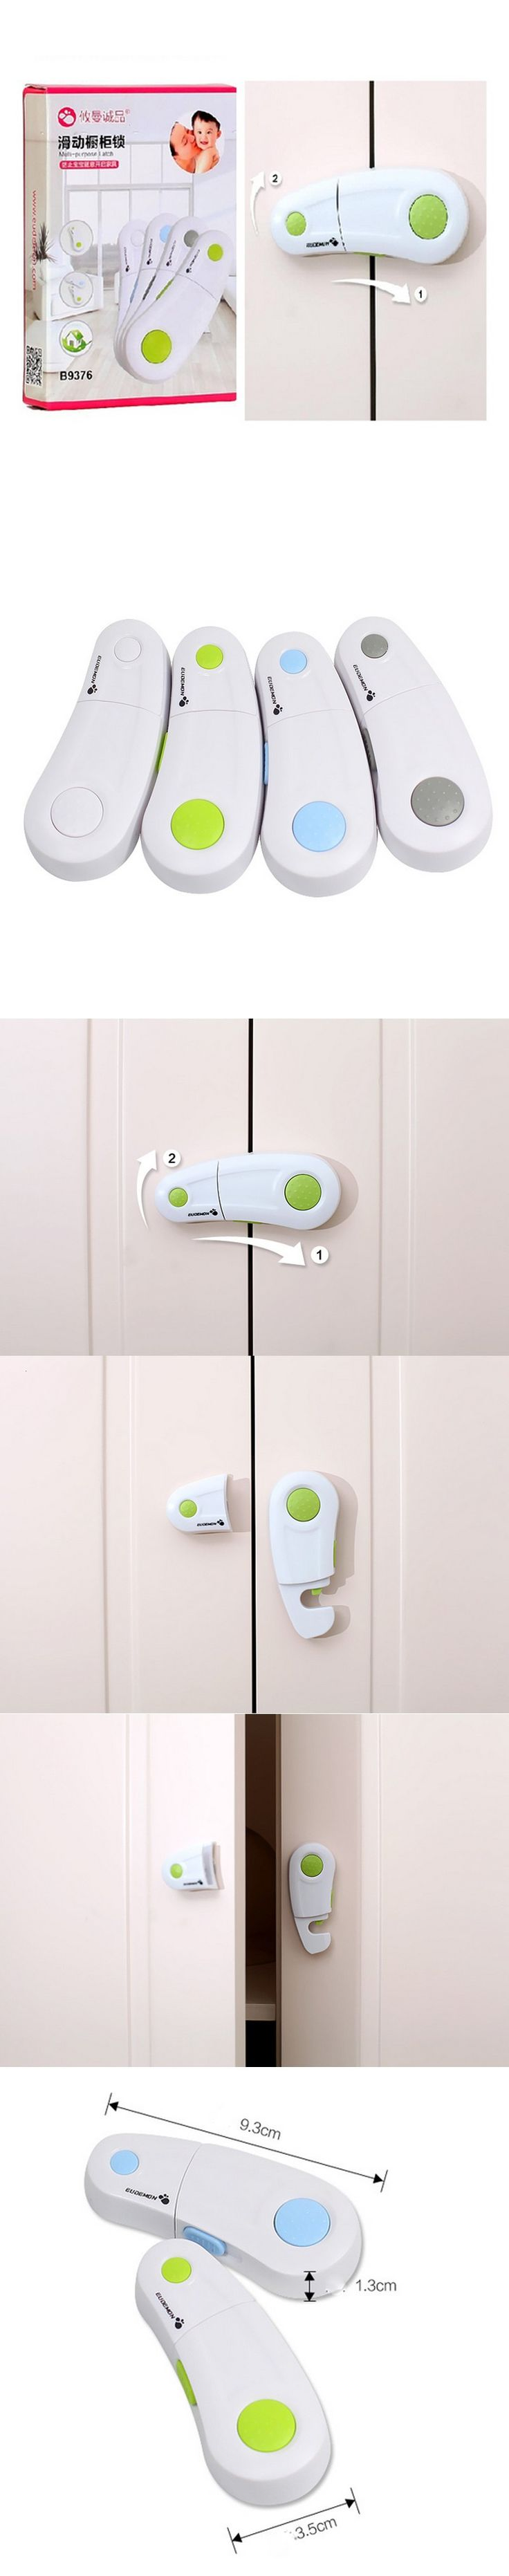 2Pcs/Pack Baby Safety Cabinet Locks Drawer Refrigerator Locks Baby Safety Security Seguridad Infantil Kids Safety aTRQ0478